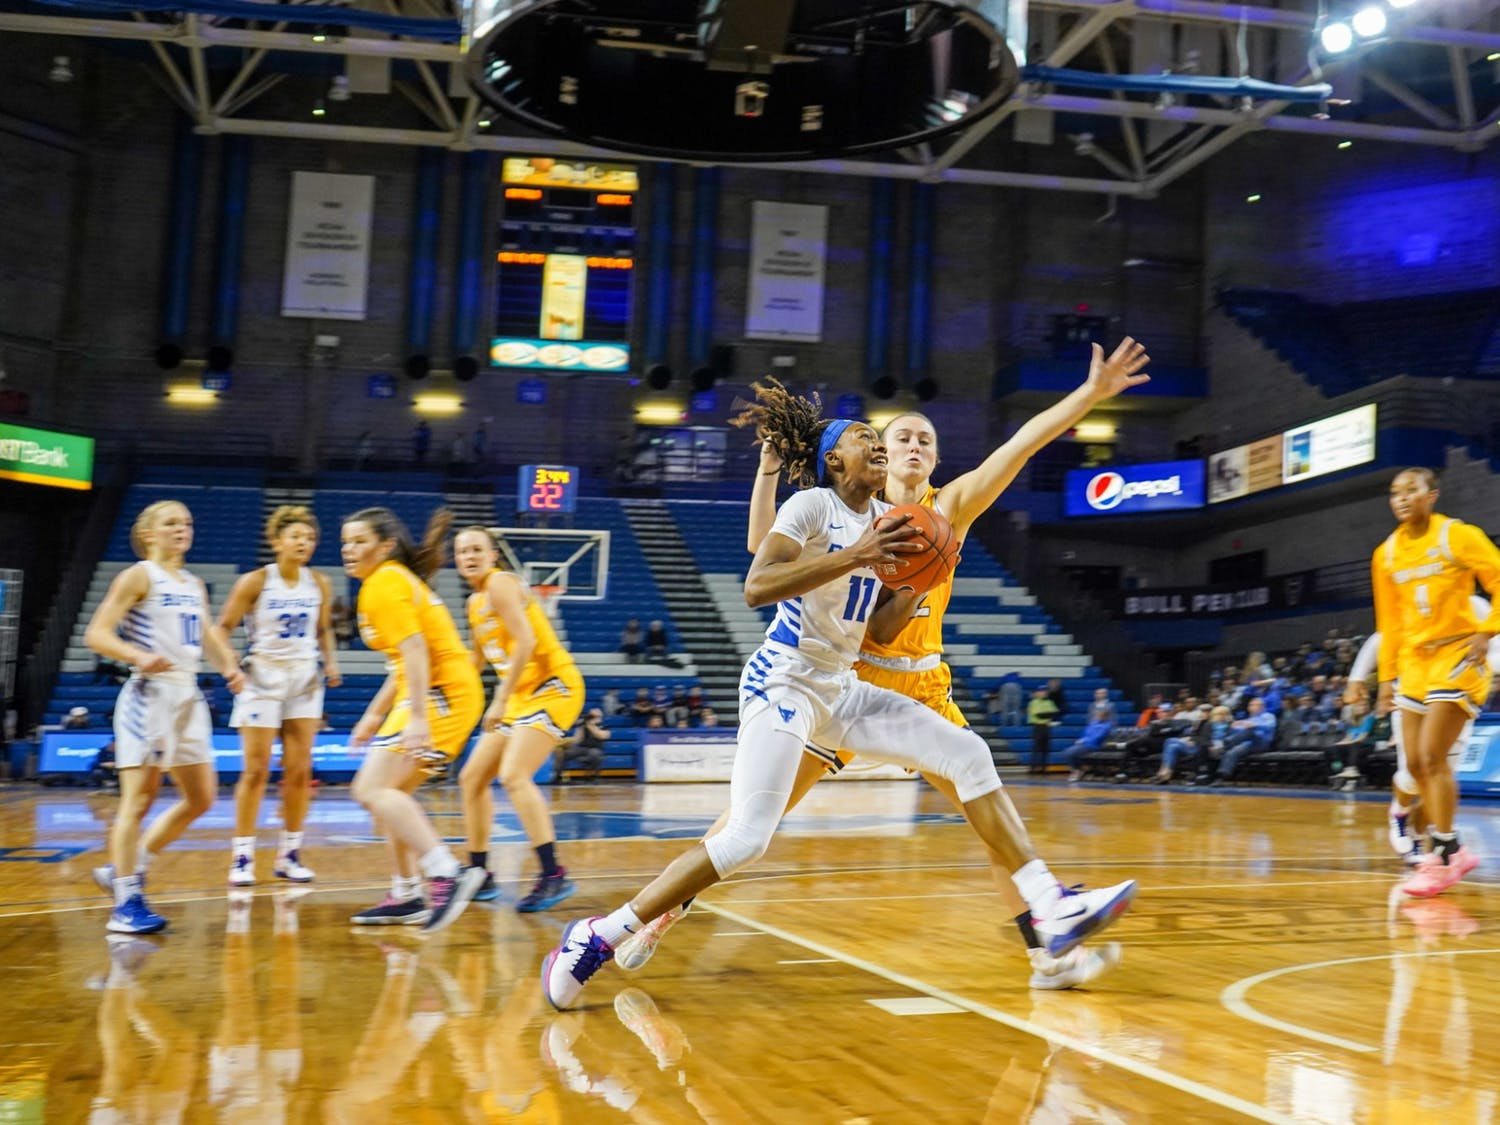 Senior Guard Theresa Onwuka goes in for a shot during the game against Kent State in the Alumni Arena on Saturday.